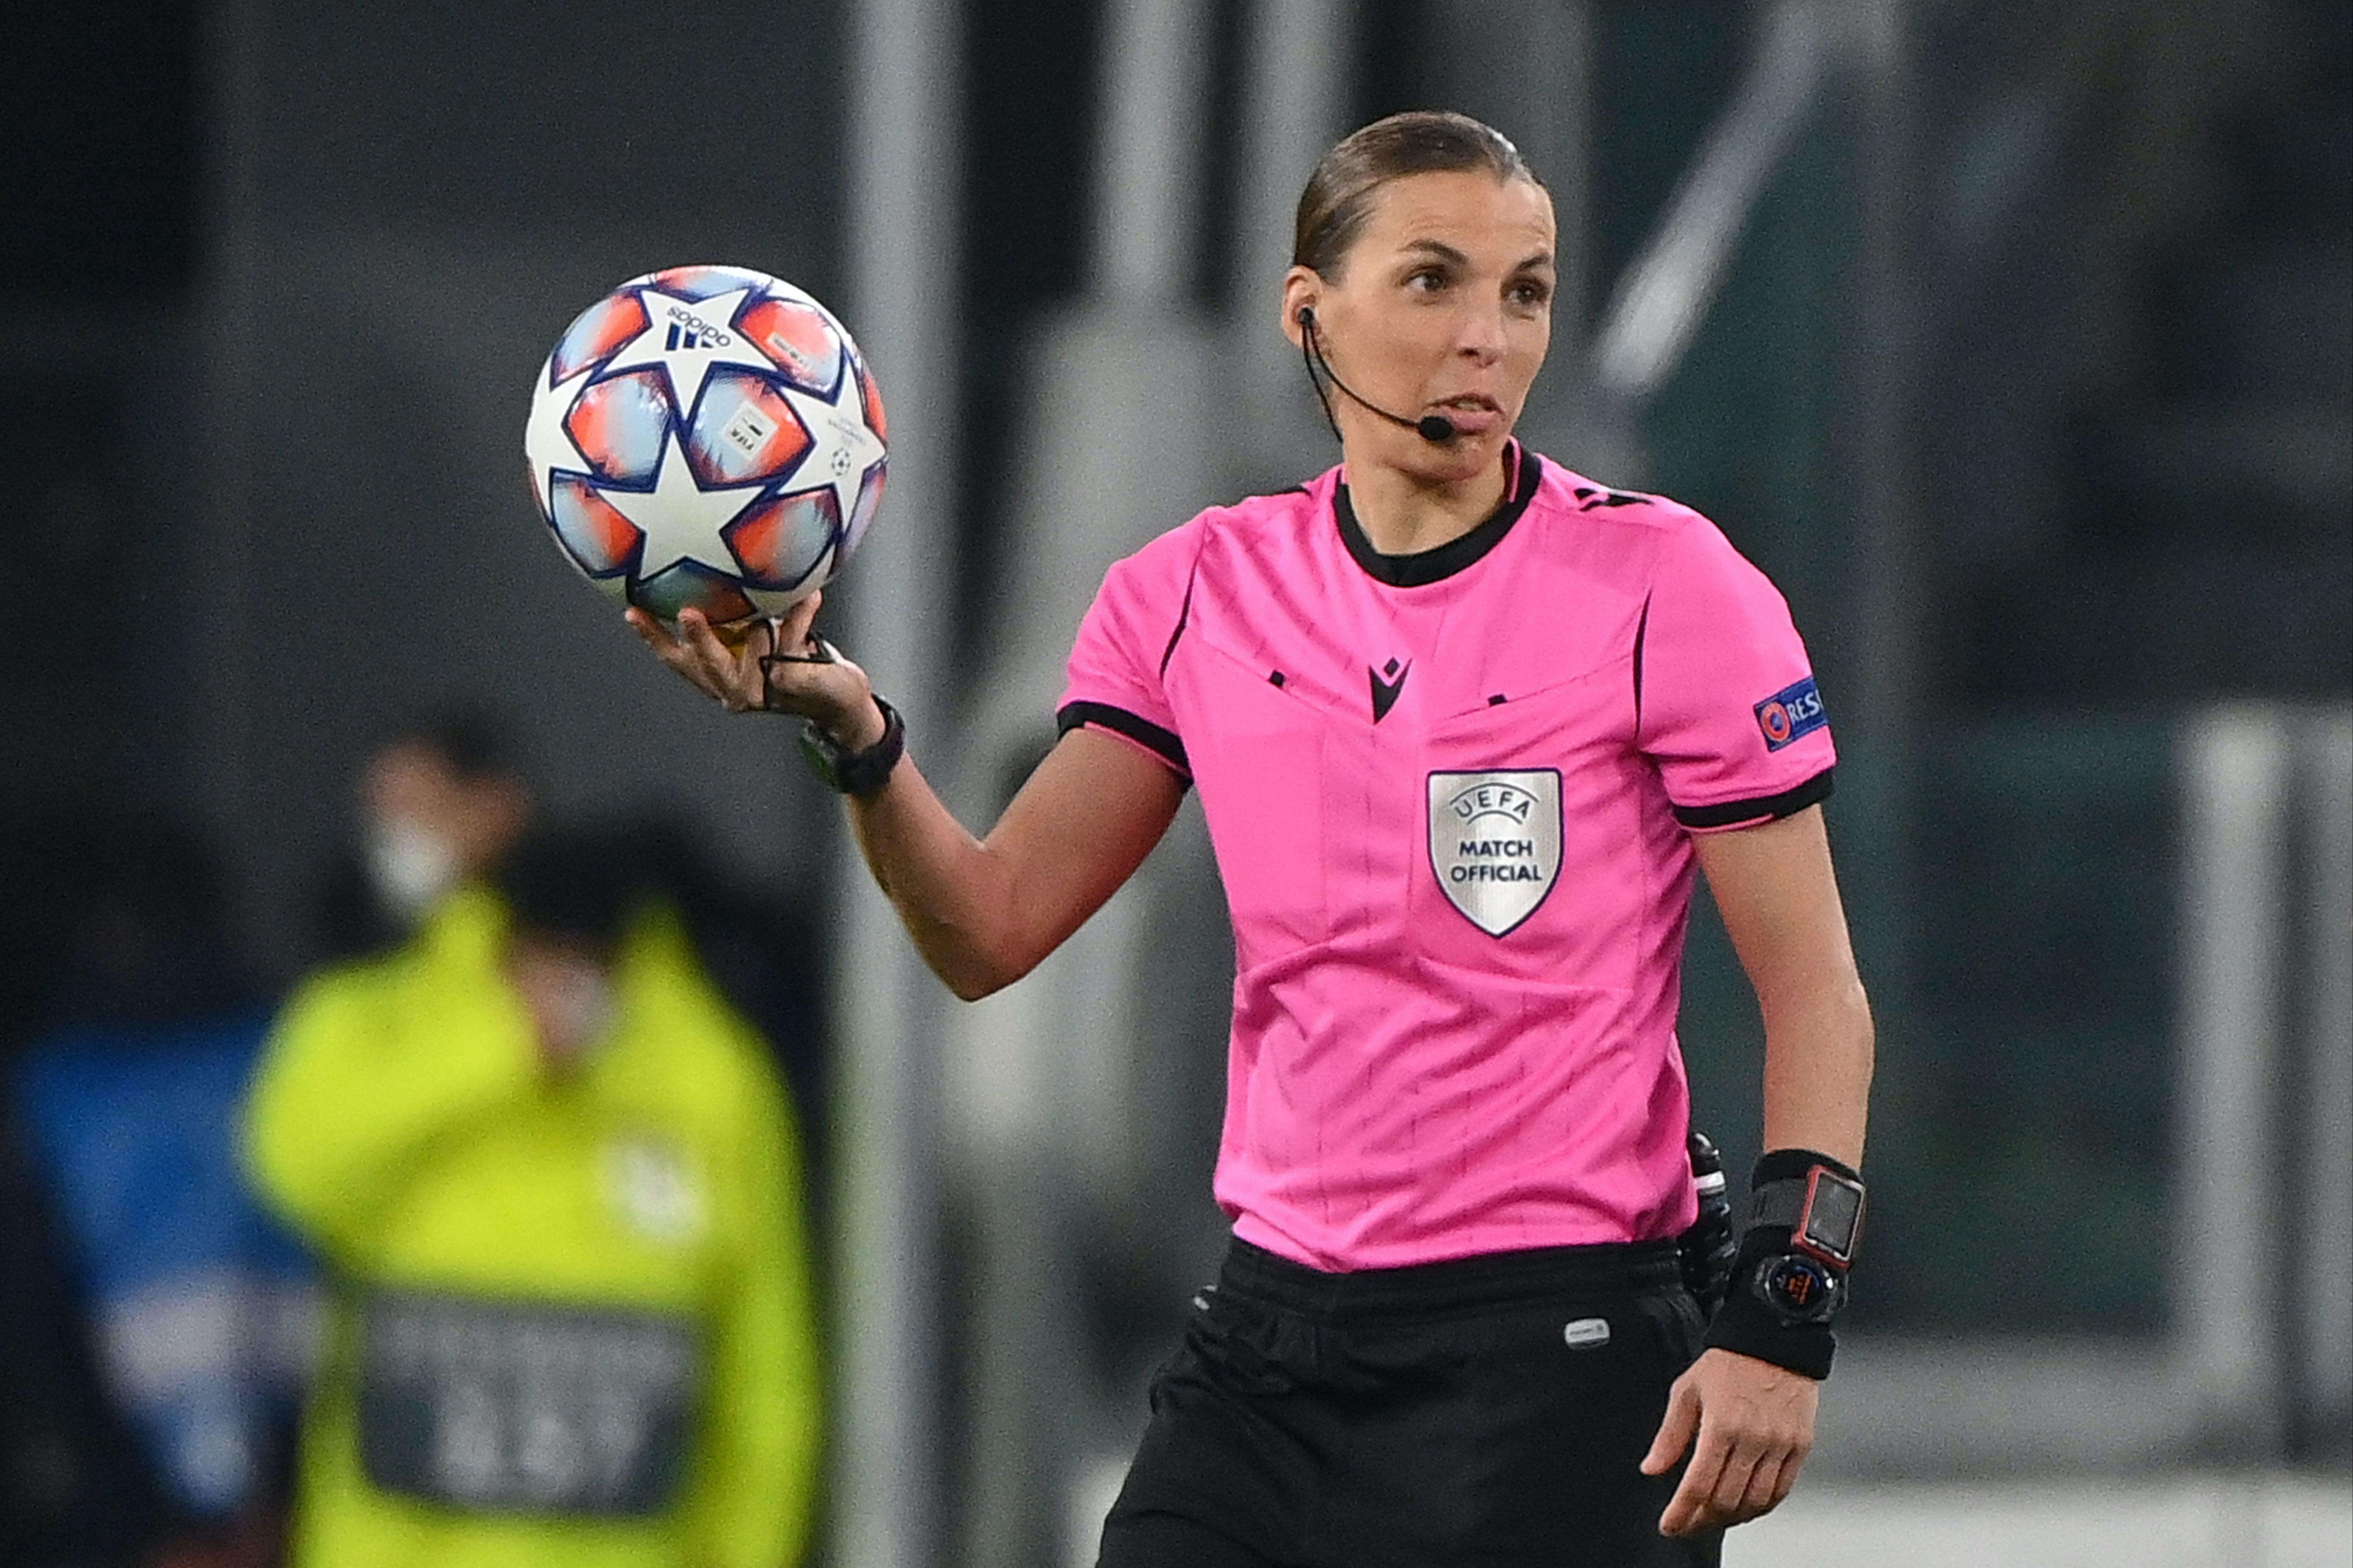 Stephanie Frappart becomes first female referee to take charge of men's Champions League match